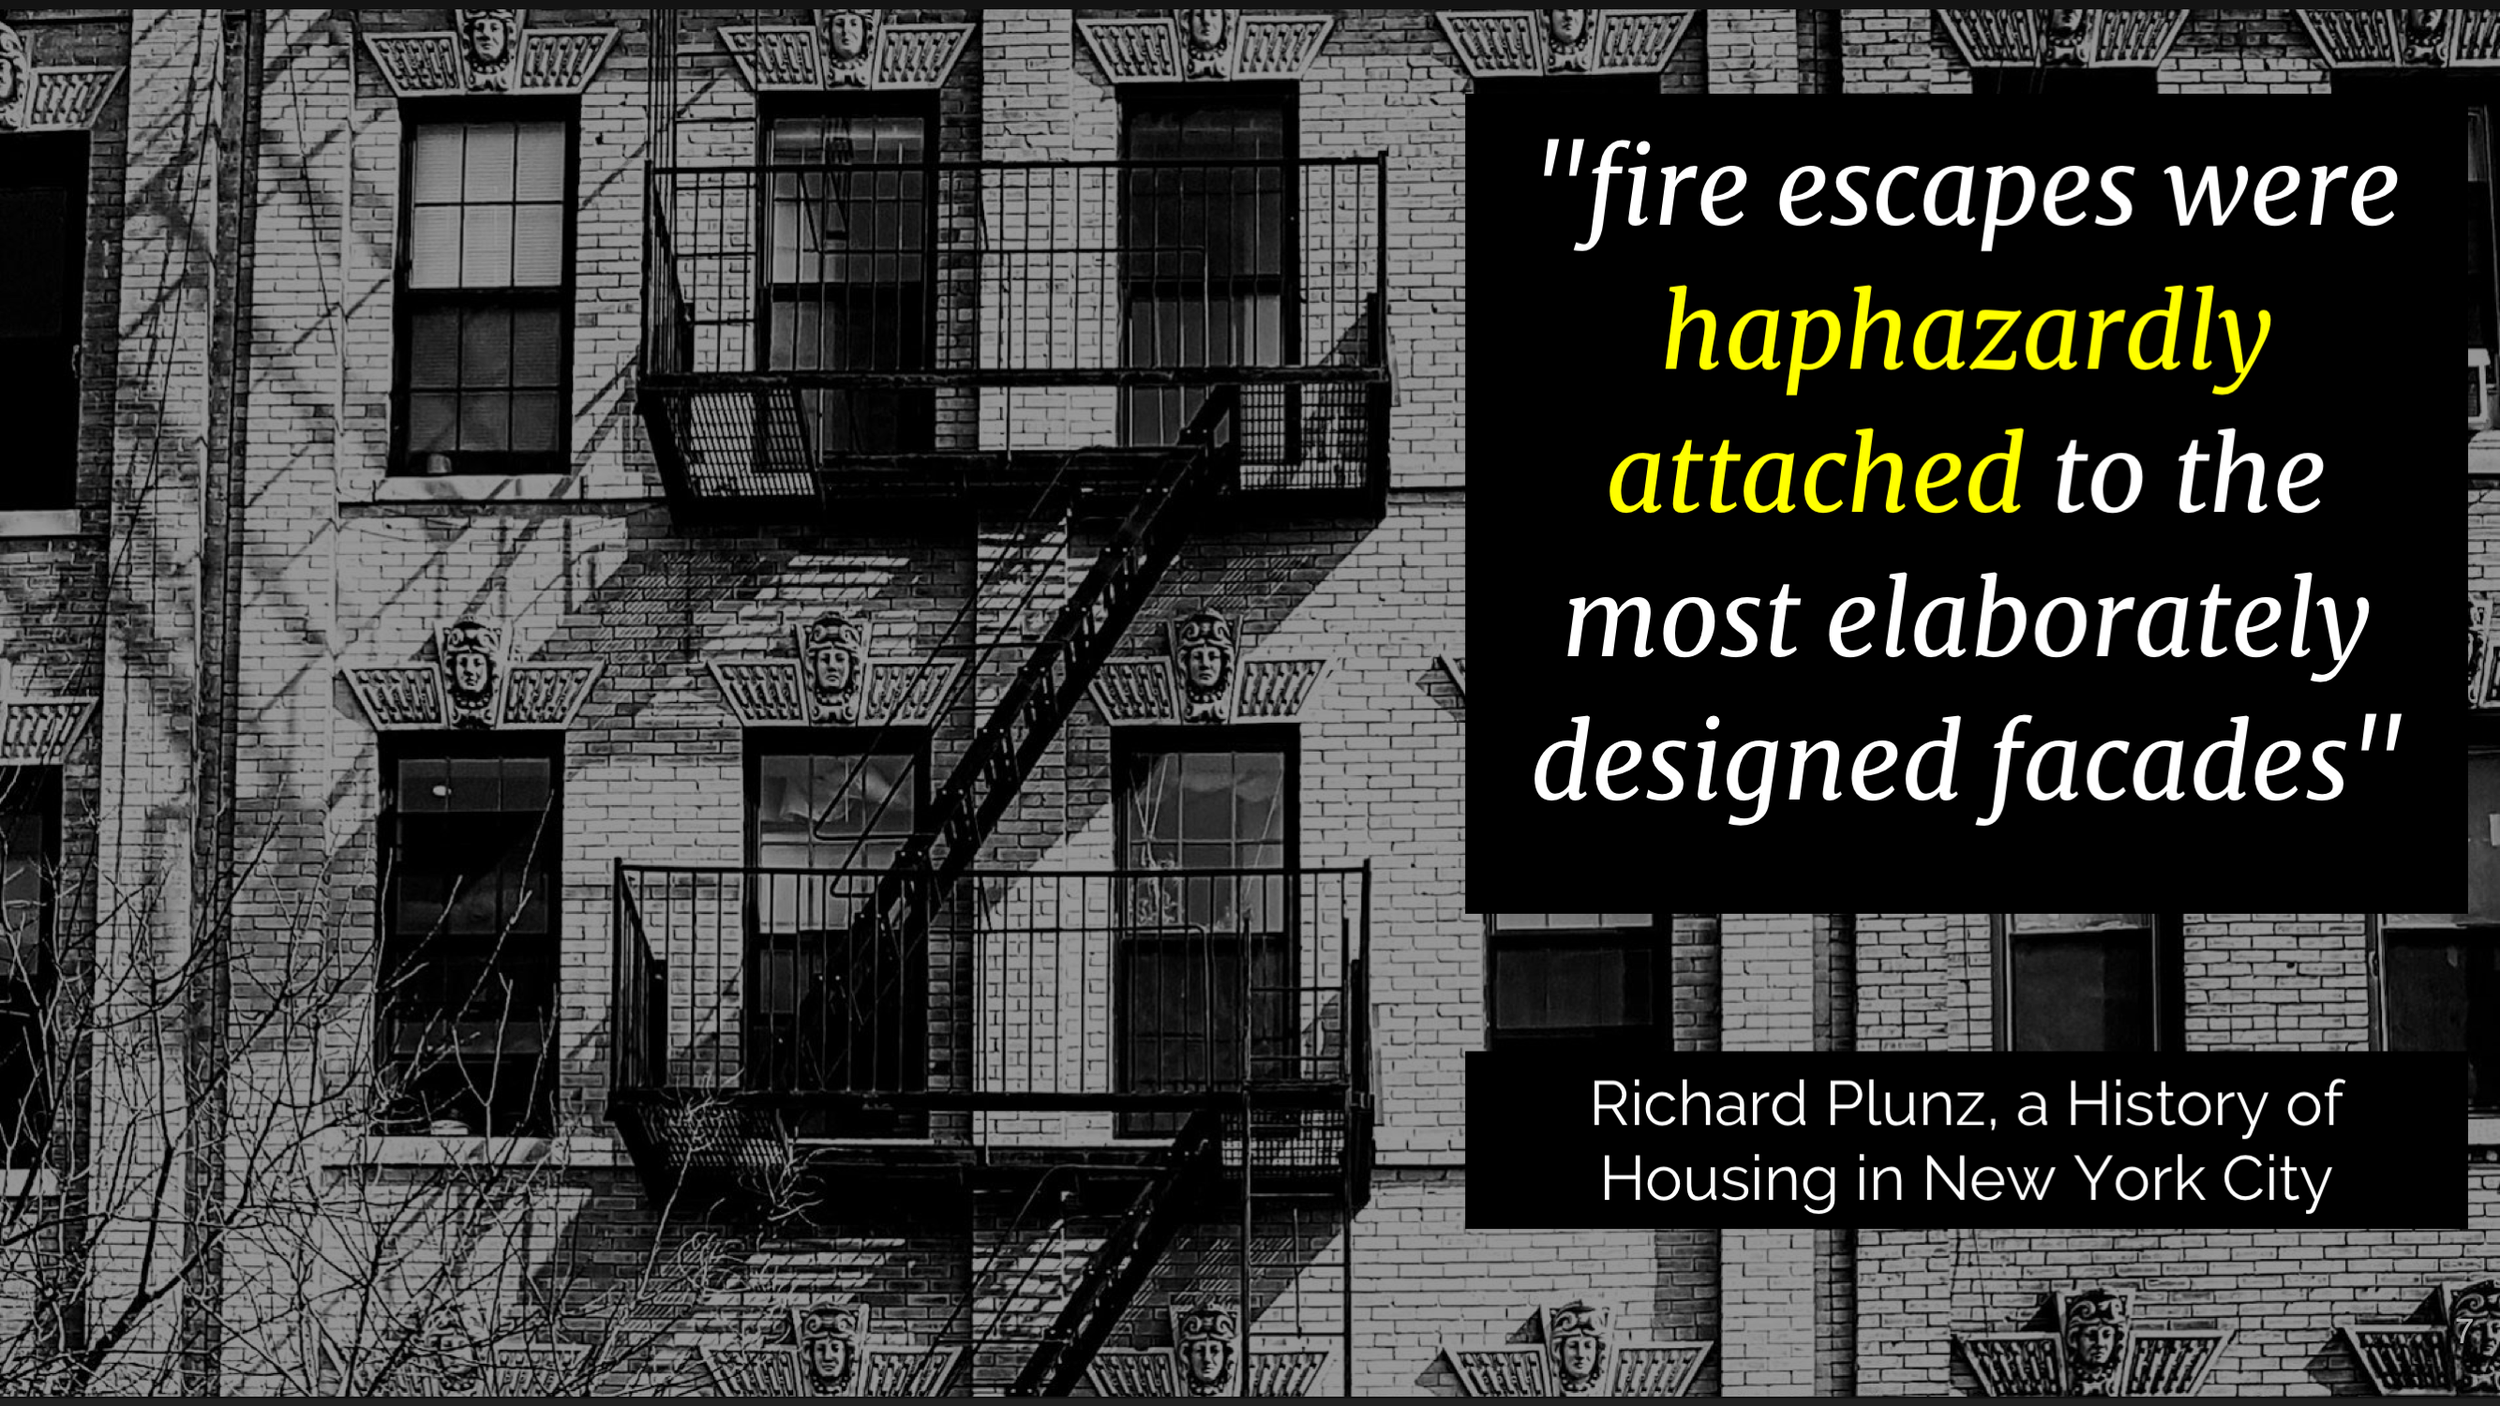 But most of the time, the people adding the fire escape didn't think of it as part of the building .As  this quote says,  fire escapes were haphazardly attached to the most elaborately designed facades. The facade of the building was  architecture  but the fire escape was  law .     It was an external contingency plan, not part of the main structure. And I think that's part of why fire escapes ended up not being successful.